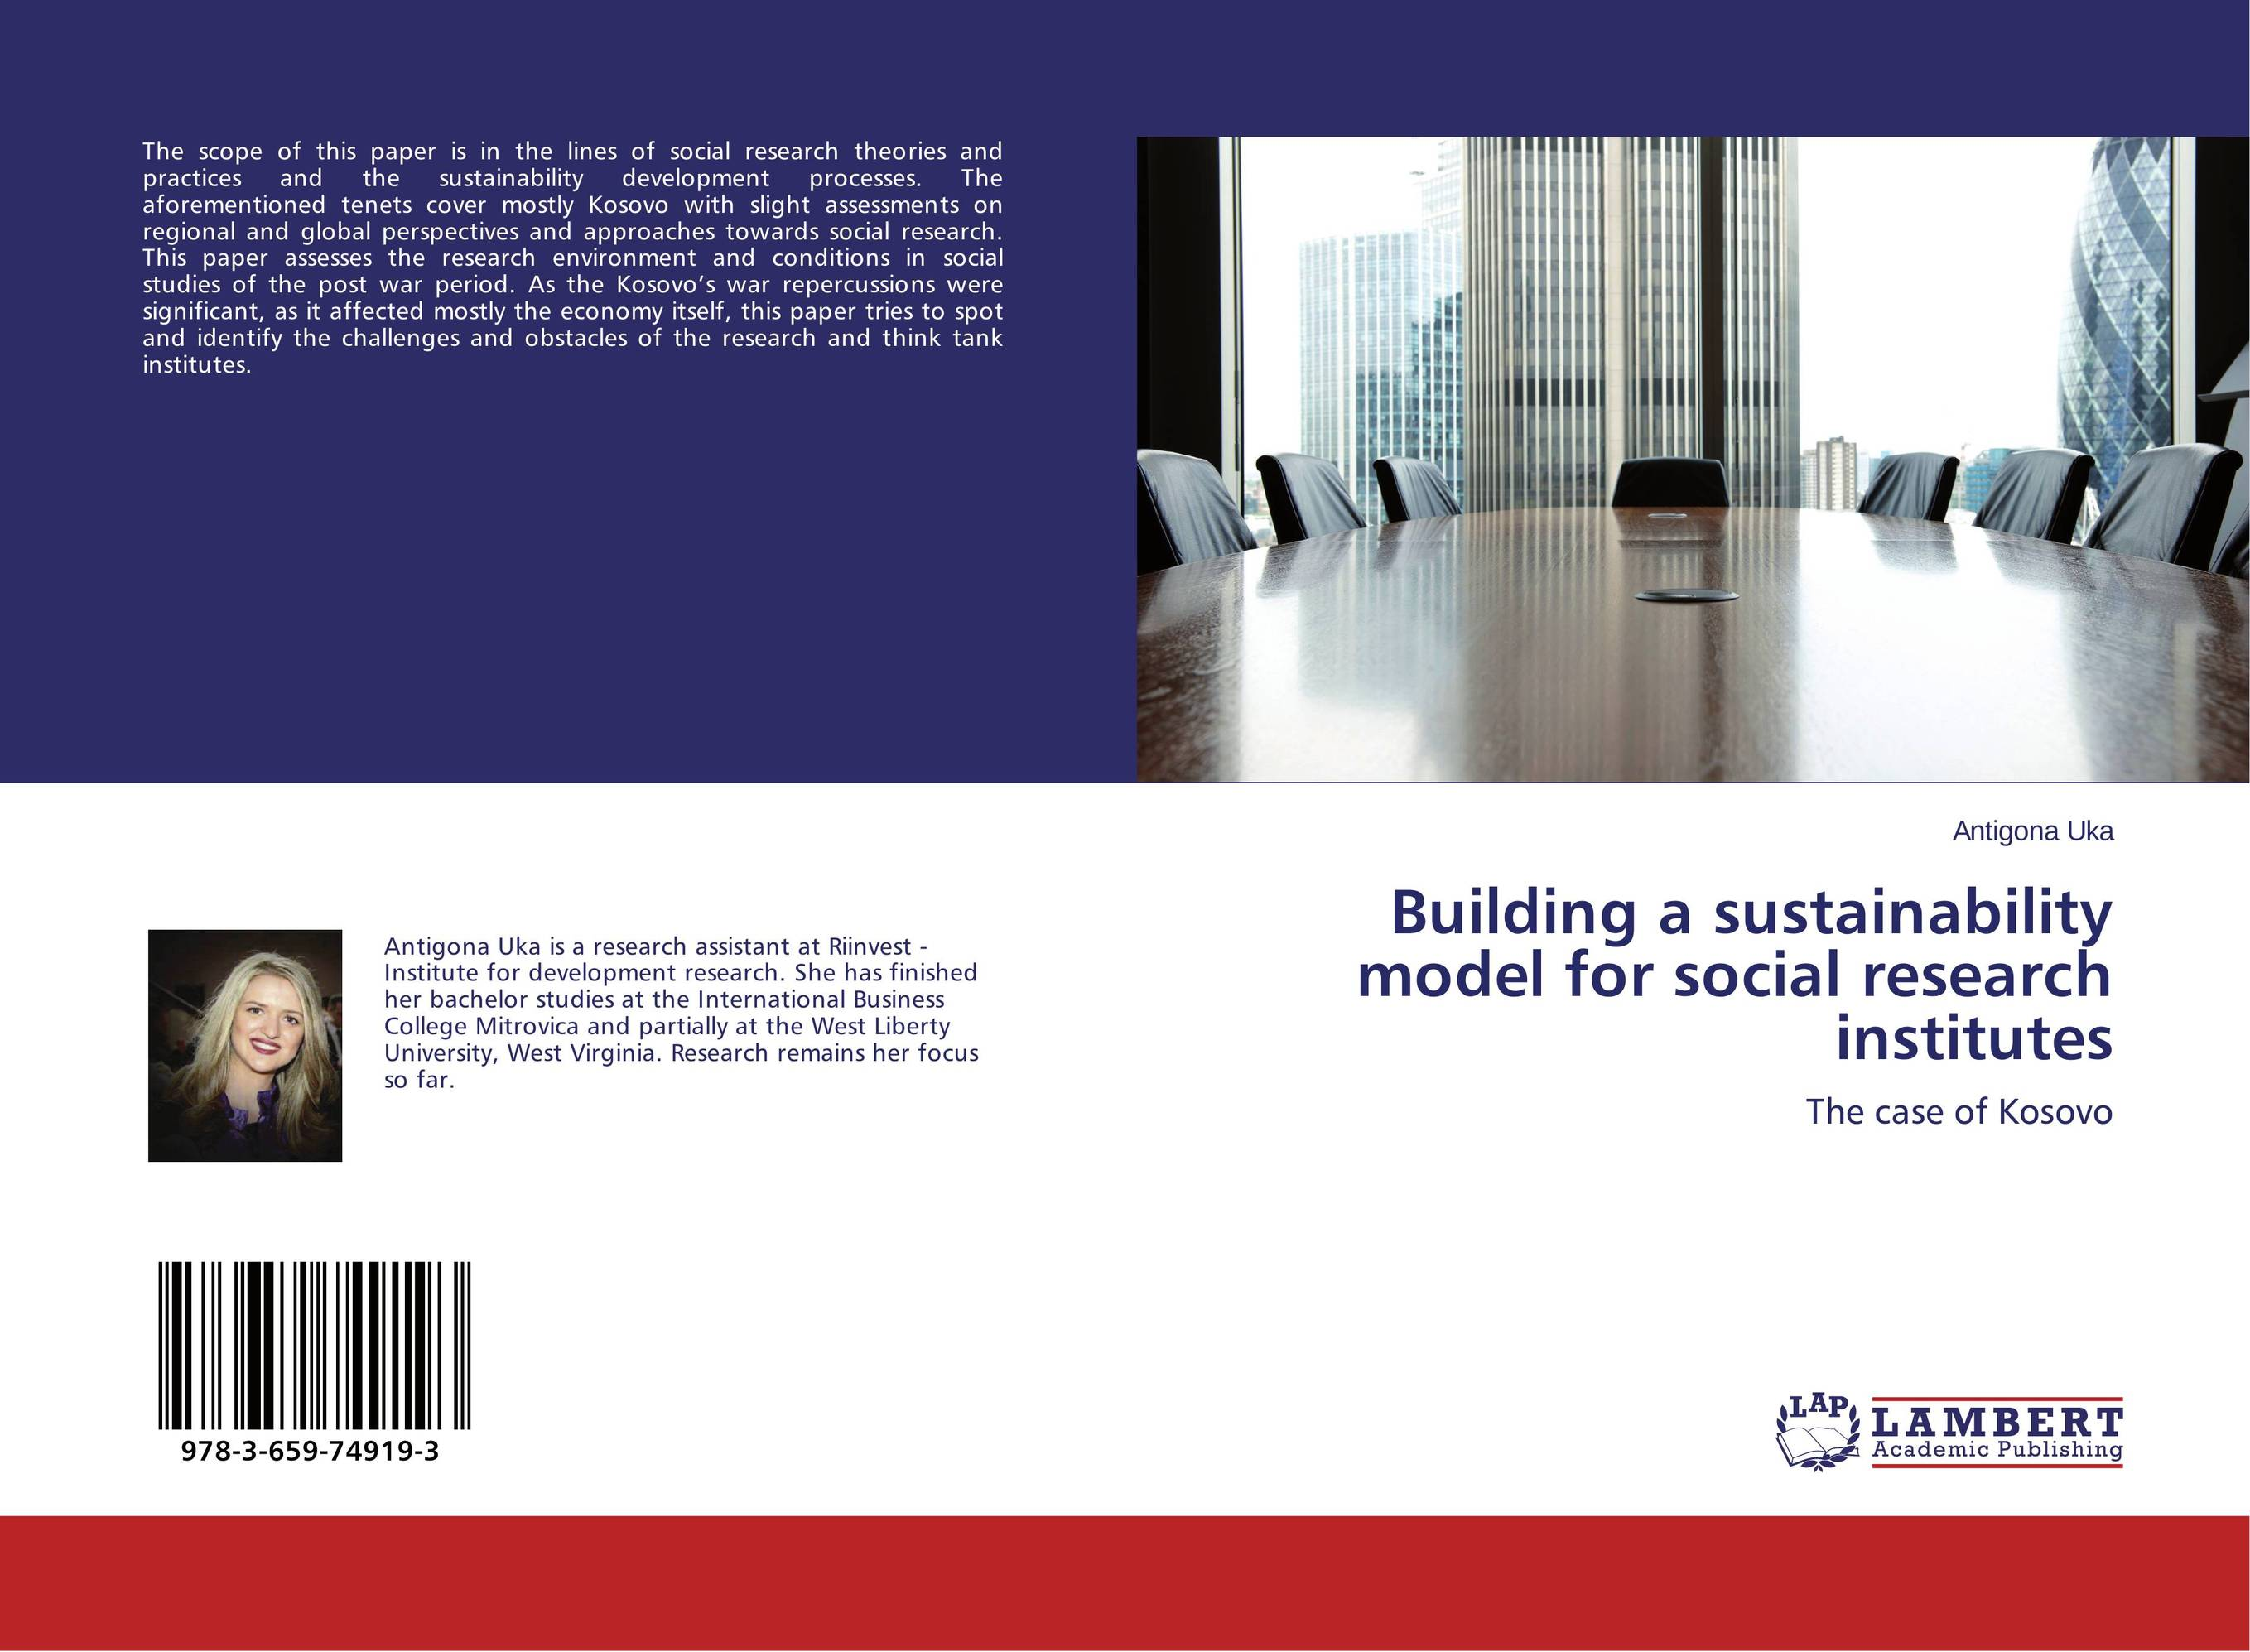 Building a sustainability model for social research institutes